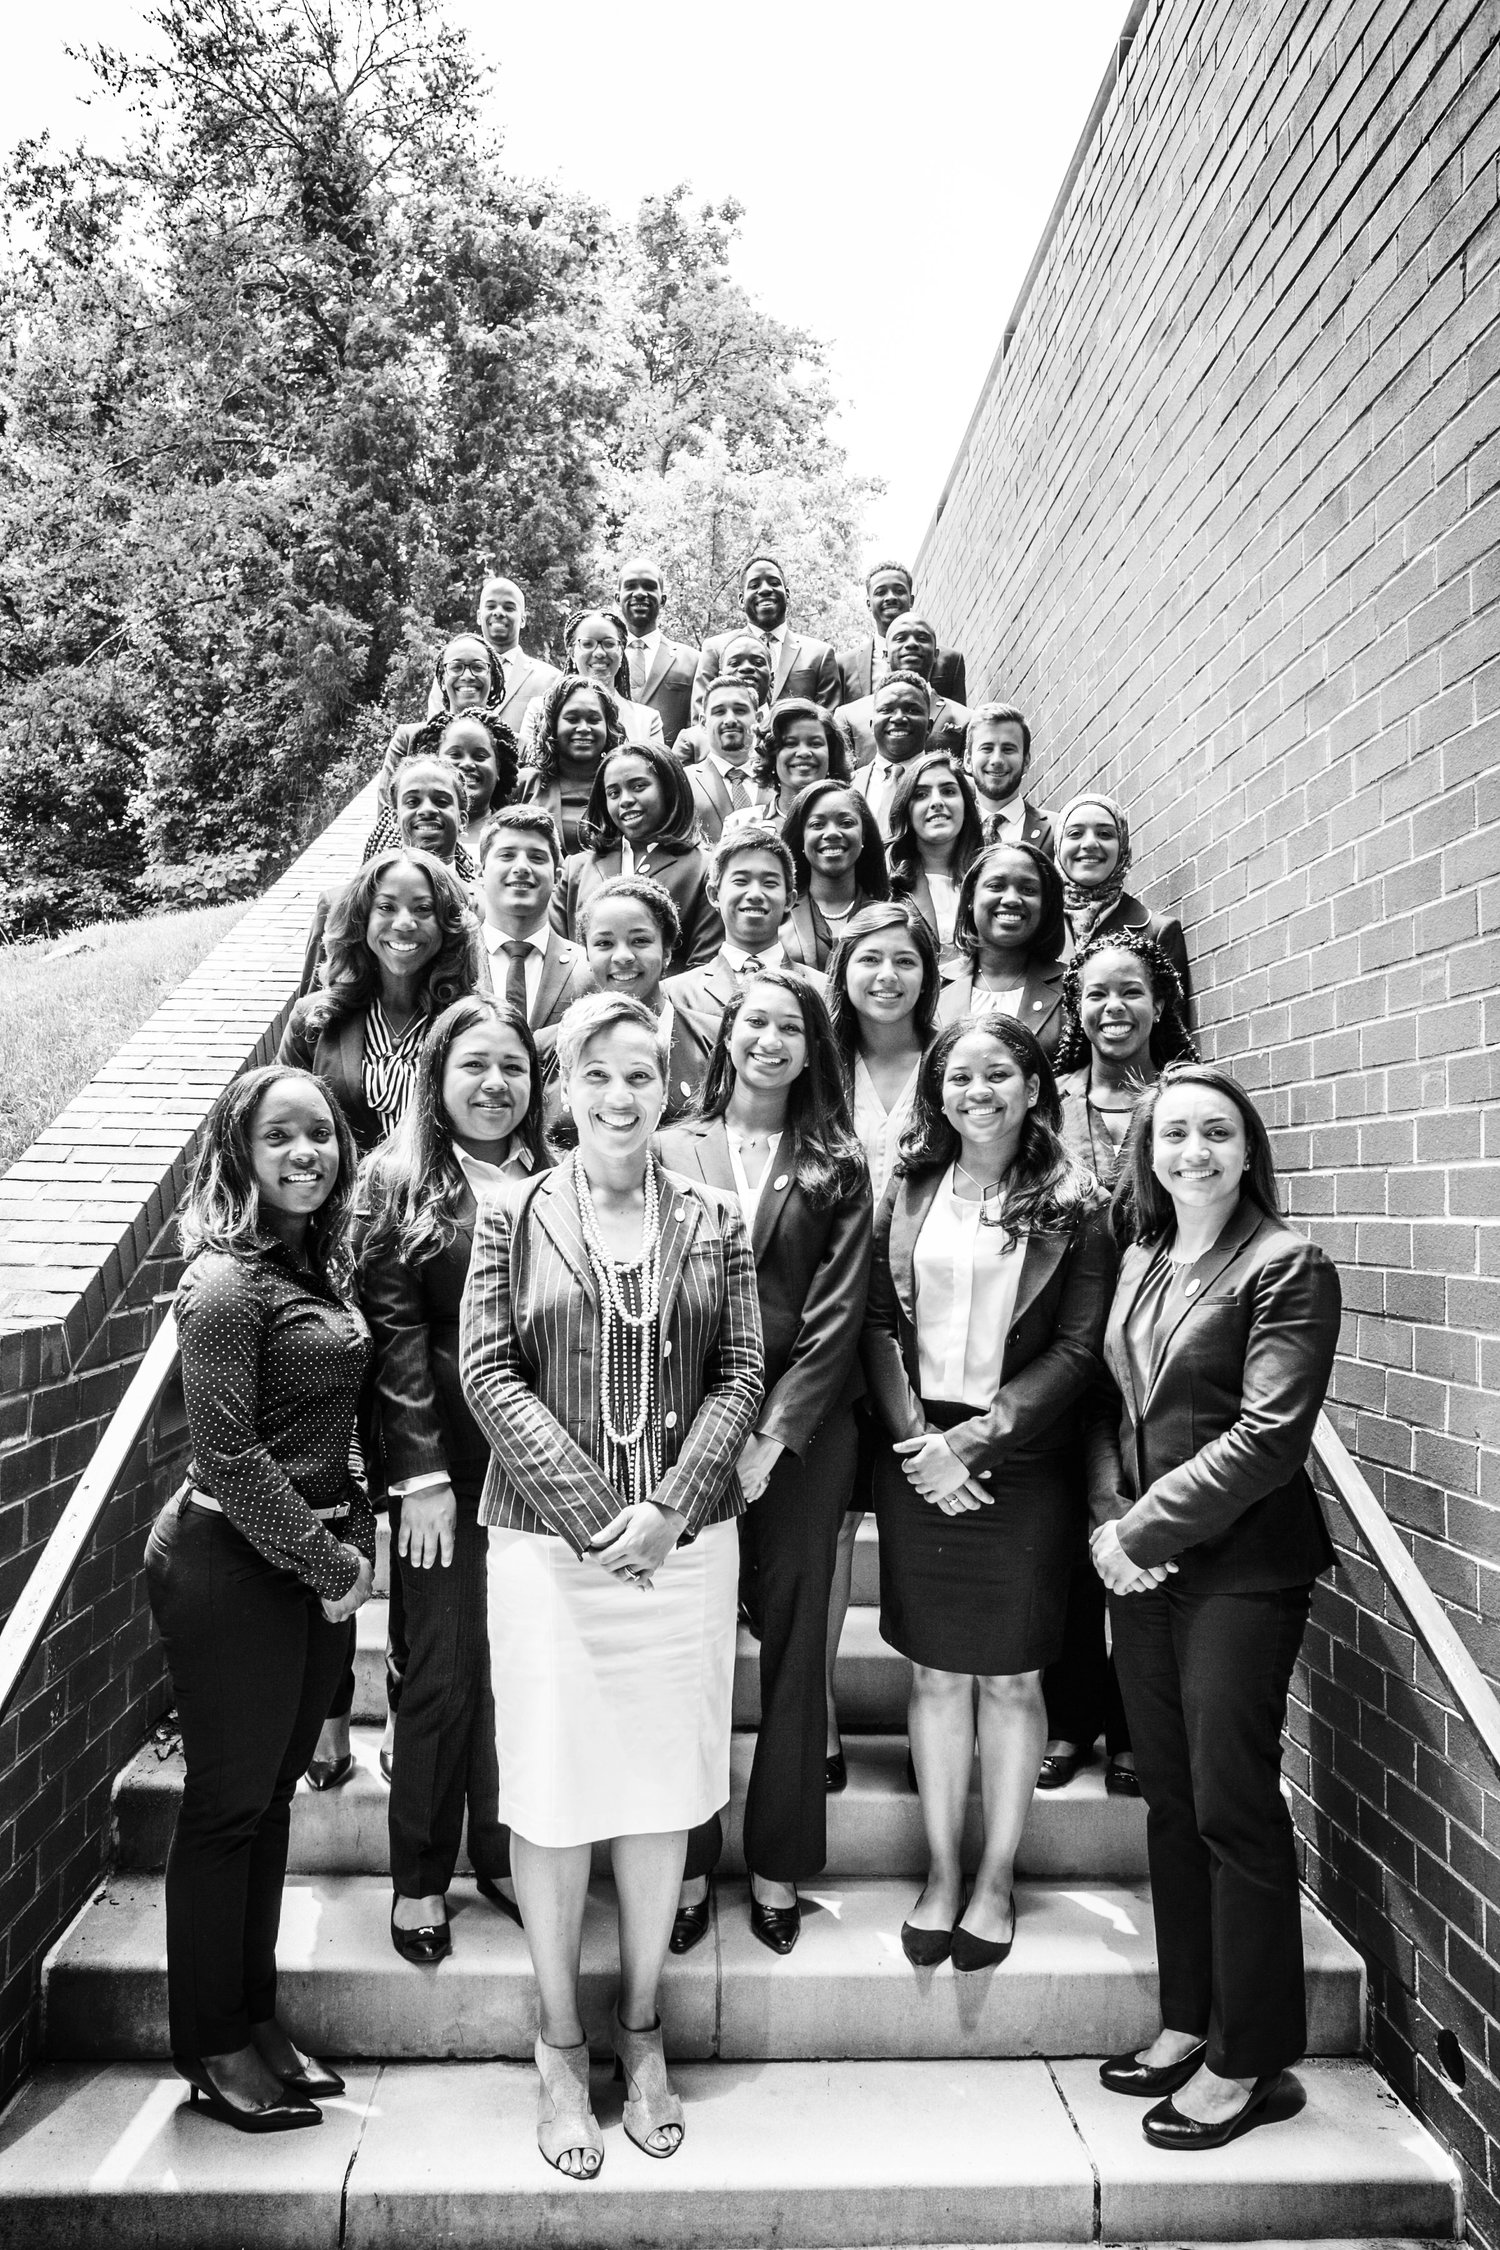 Our Mission - Nth Dimensions was founded in 2004 by orthopaedic surgeons working collaboratively with academic institutions, community surgeons, and industry to address the dearth of women and underrepresented minorities (URMs) in orthopaedic surgery. The overarching goal of Nth Dimensions is to address and eliminate healthcare disparities for all communities. The primary mission is to provide resources, expertise, and experience, through developing and implementing strategic pipeline initiatives.Learn More